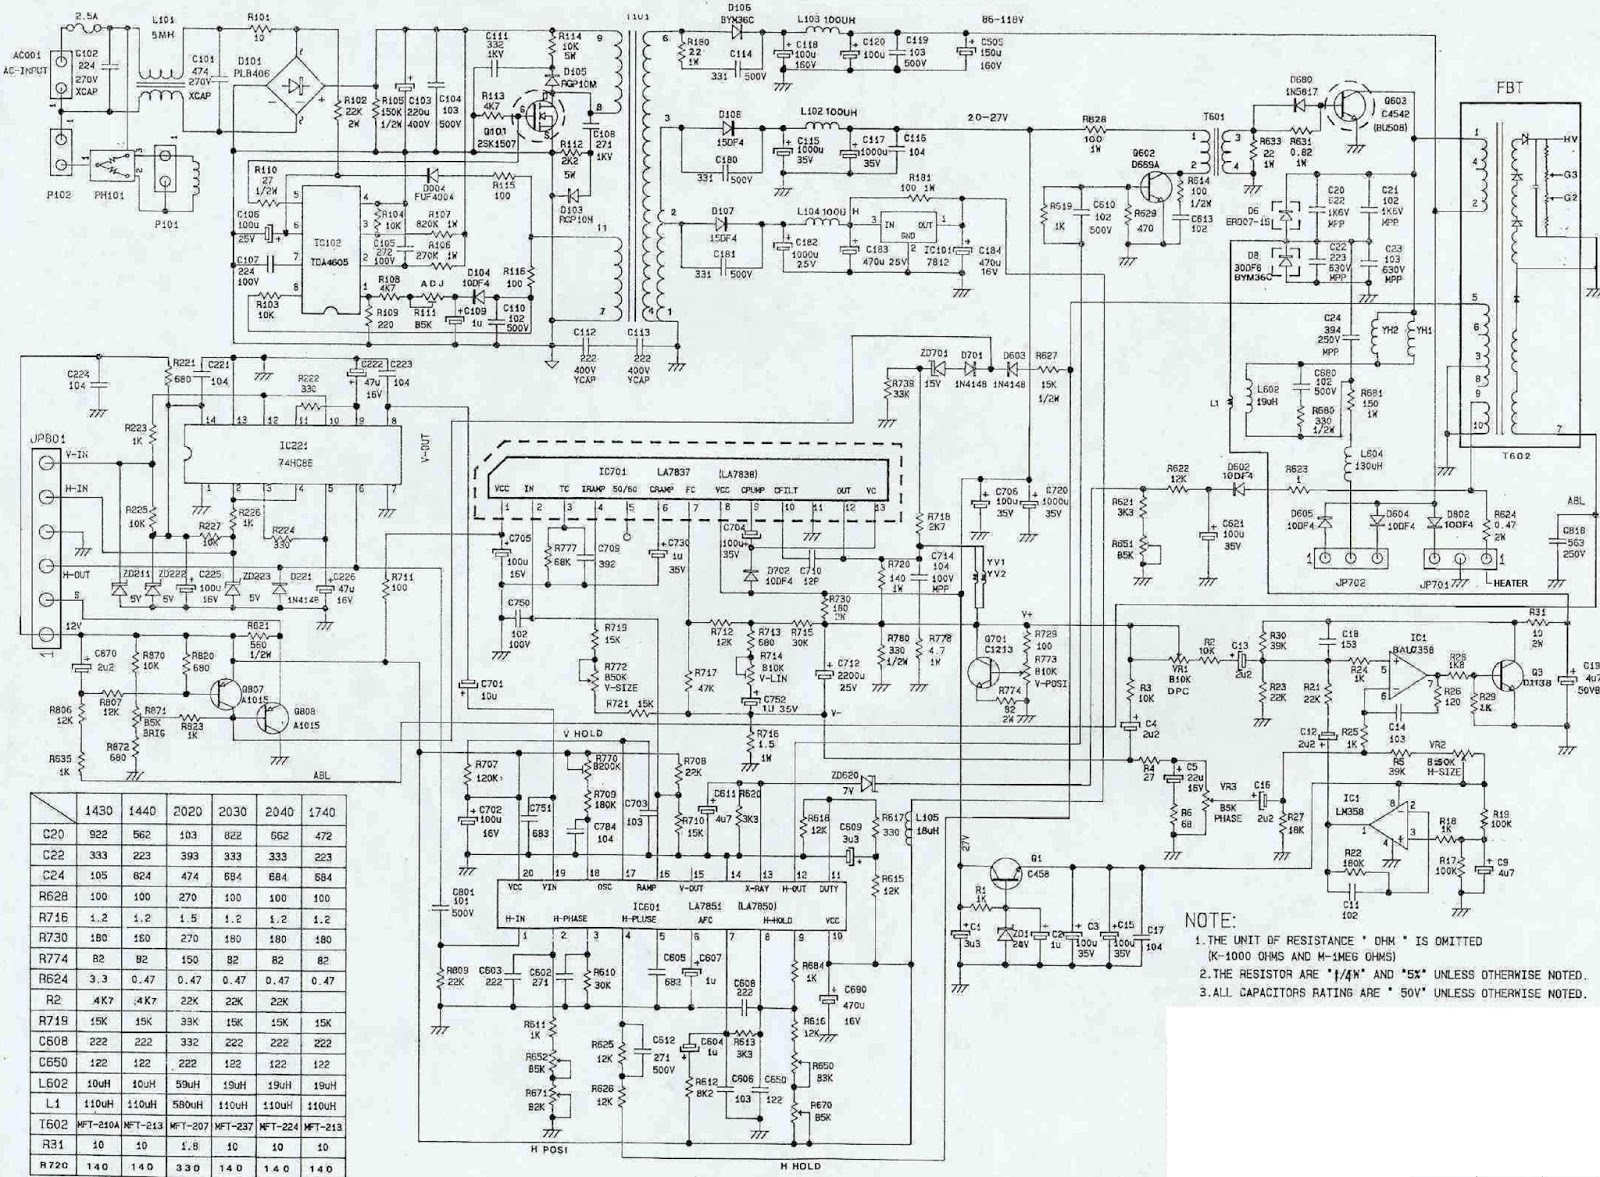 Schematic Diagram Xbox 360 Wiring Libraries With Labels One Diagrams Schemaschematic Simple Motherboard